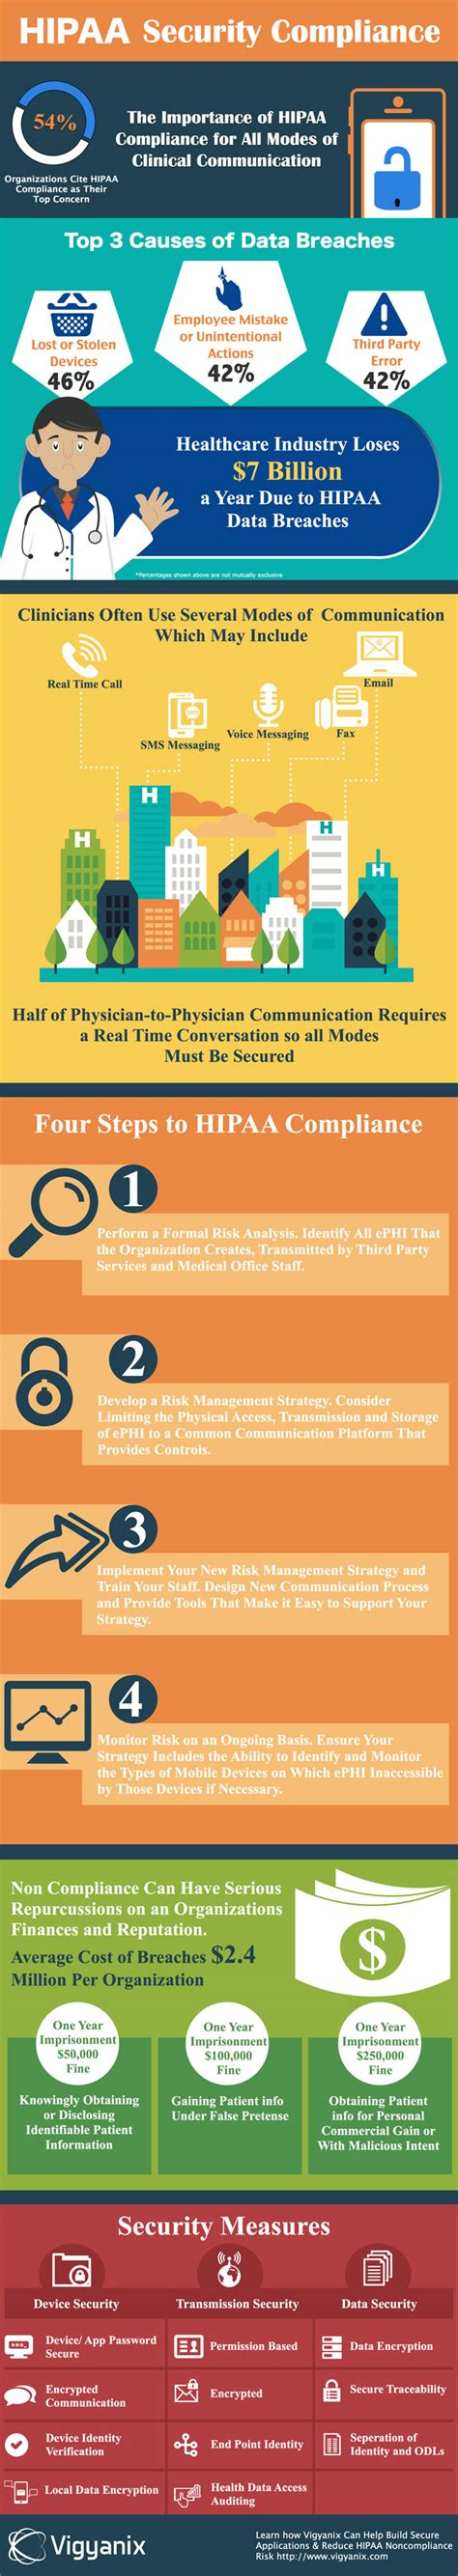 HIPAA demystified – What you need to know about HIPAA